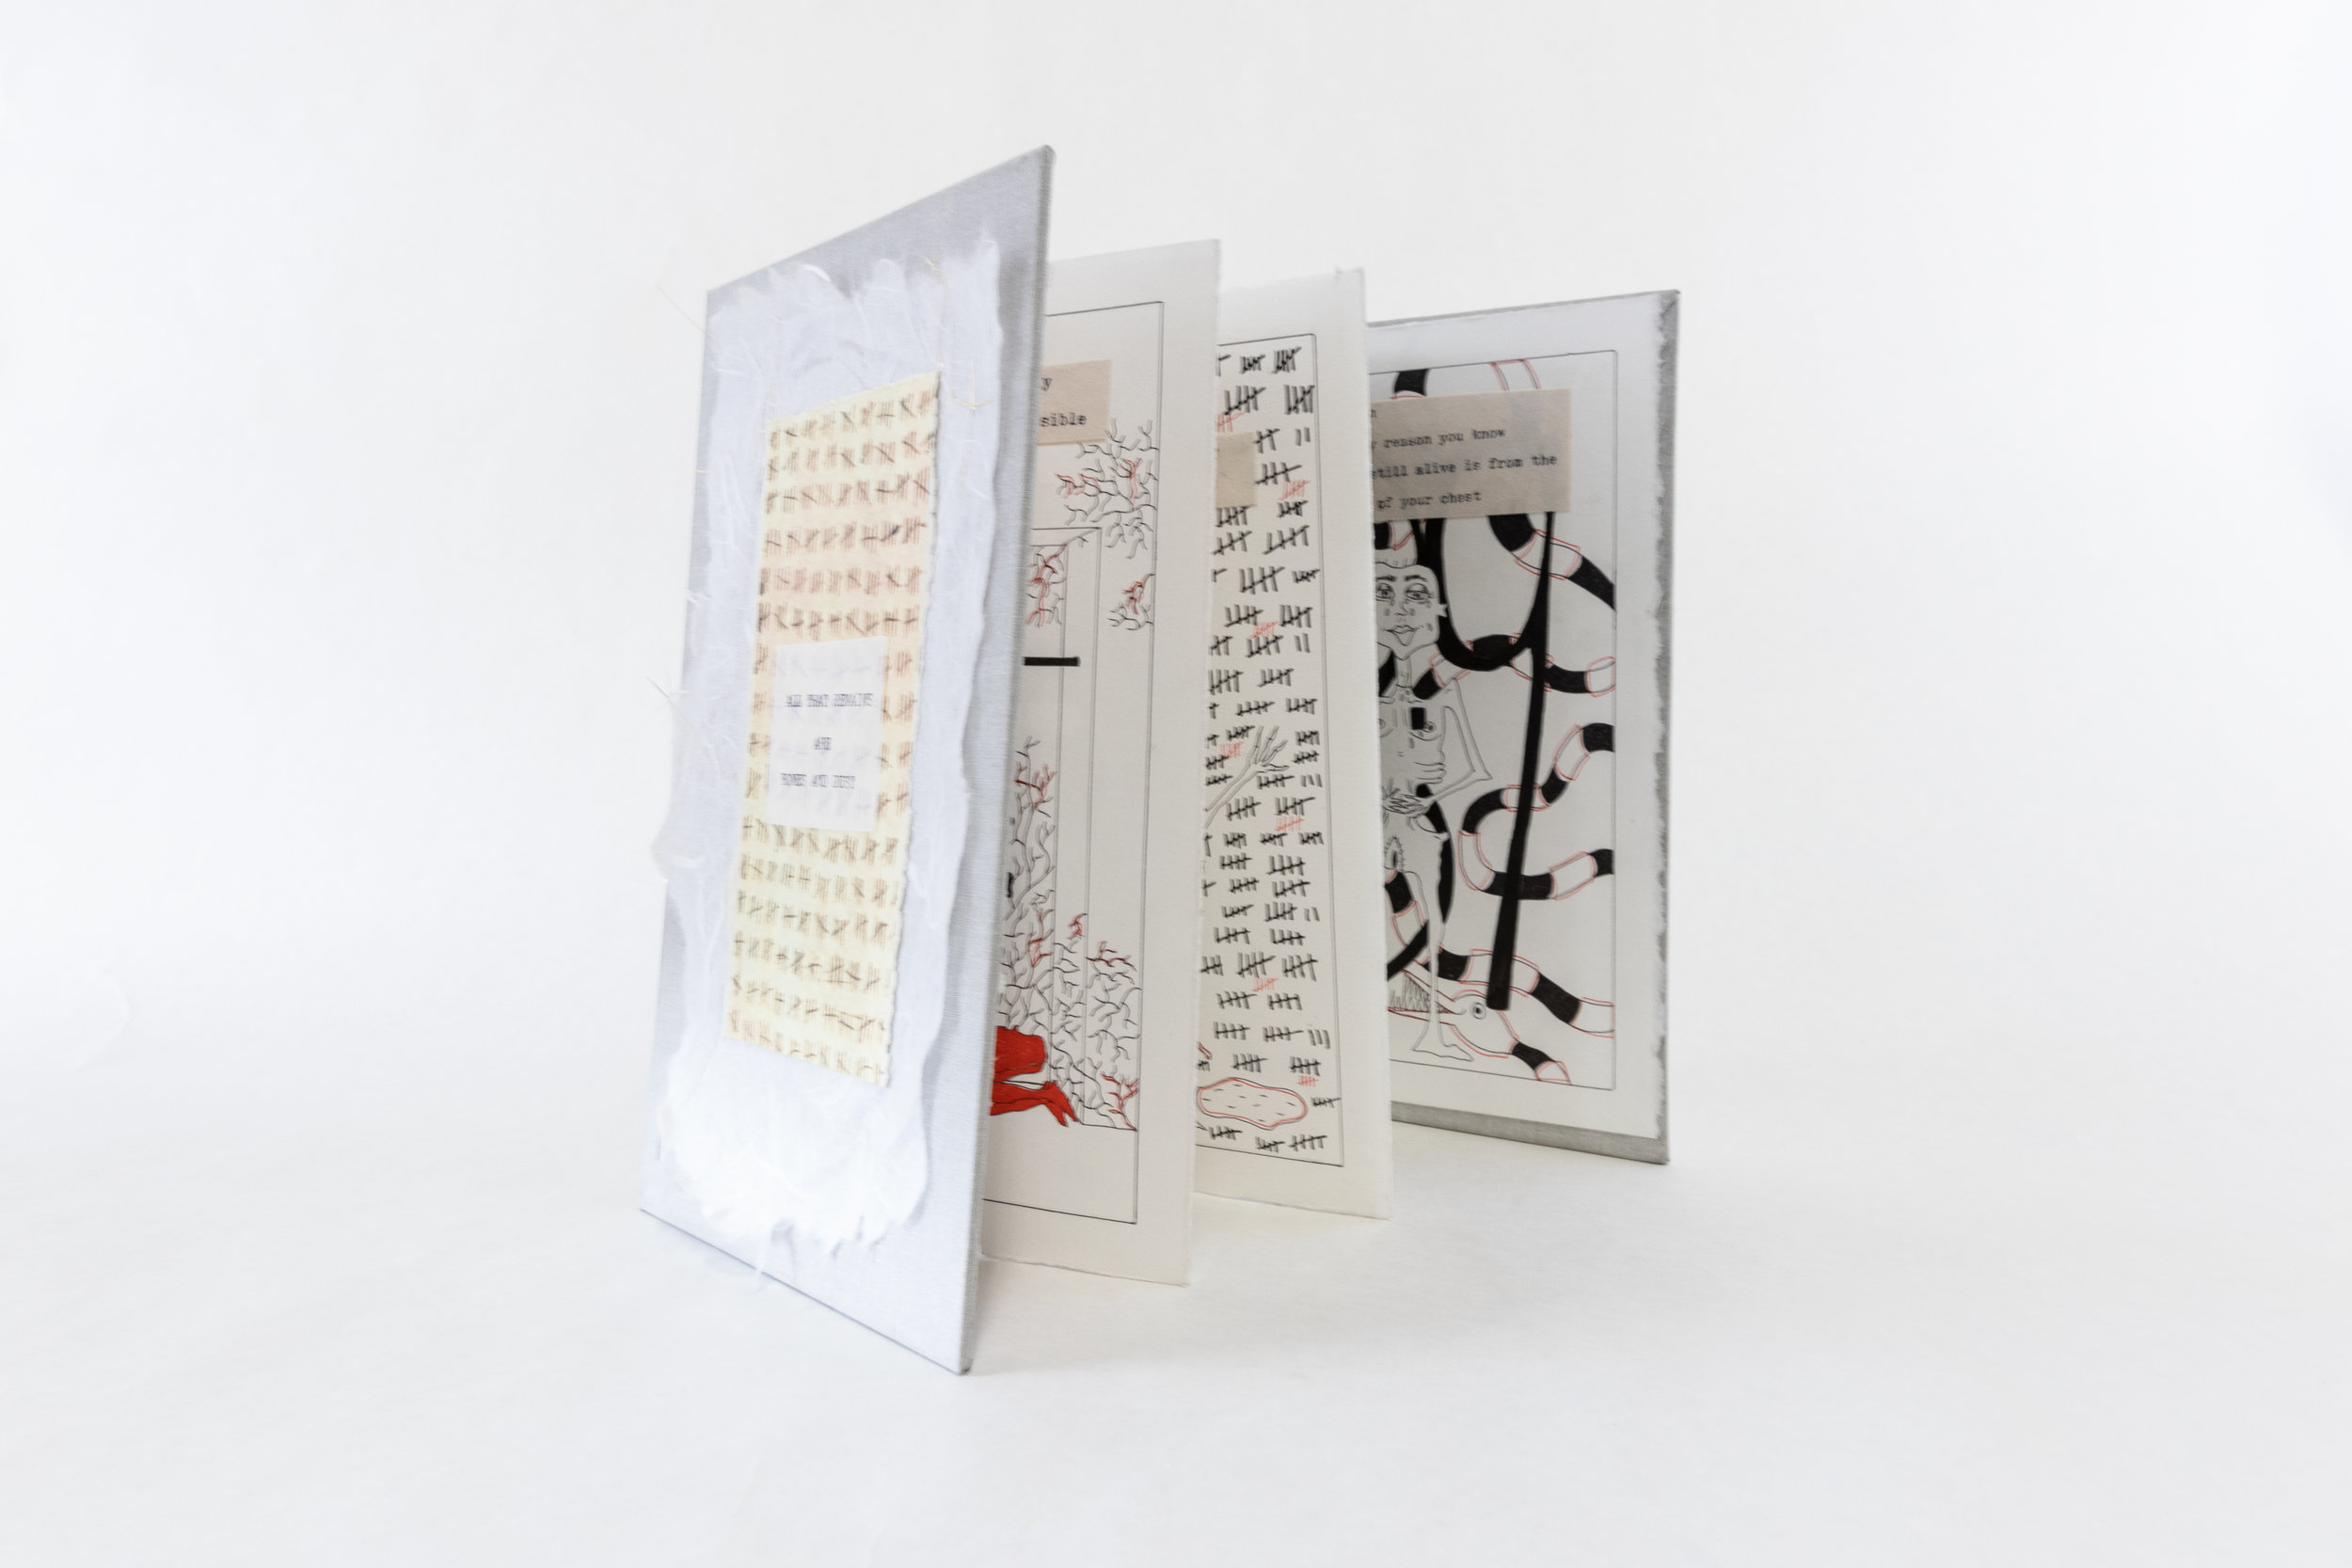 """Erica Eschenburg, """"All that Remains are Bones and Dust,"""" Accordion book and red and black pen, 2019, Contact the Artist for Price, Whitmore Lake, MI"""